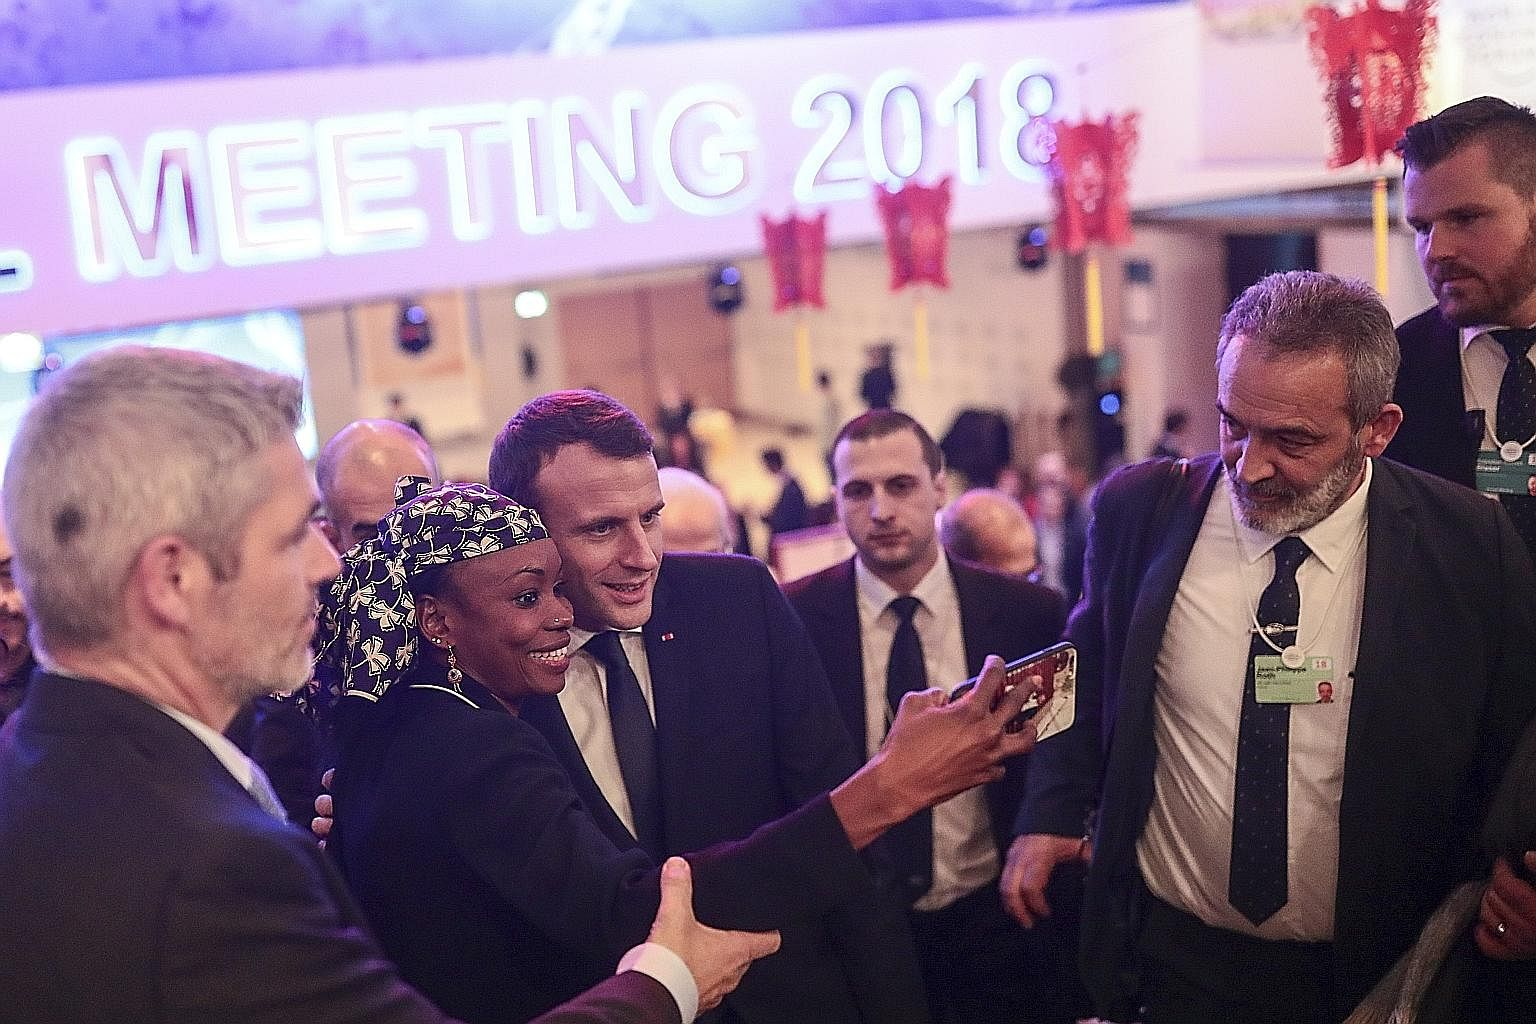 Mr Emmanuel Macron posing for a wefie with an attendee at the World Economic Forum. In his speech, Mr Macron called for a new global compact to address the forces that led to rising inequality and populism. While participants at the World Economic Fo